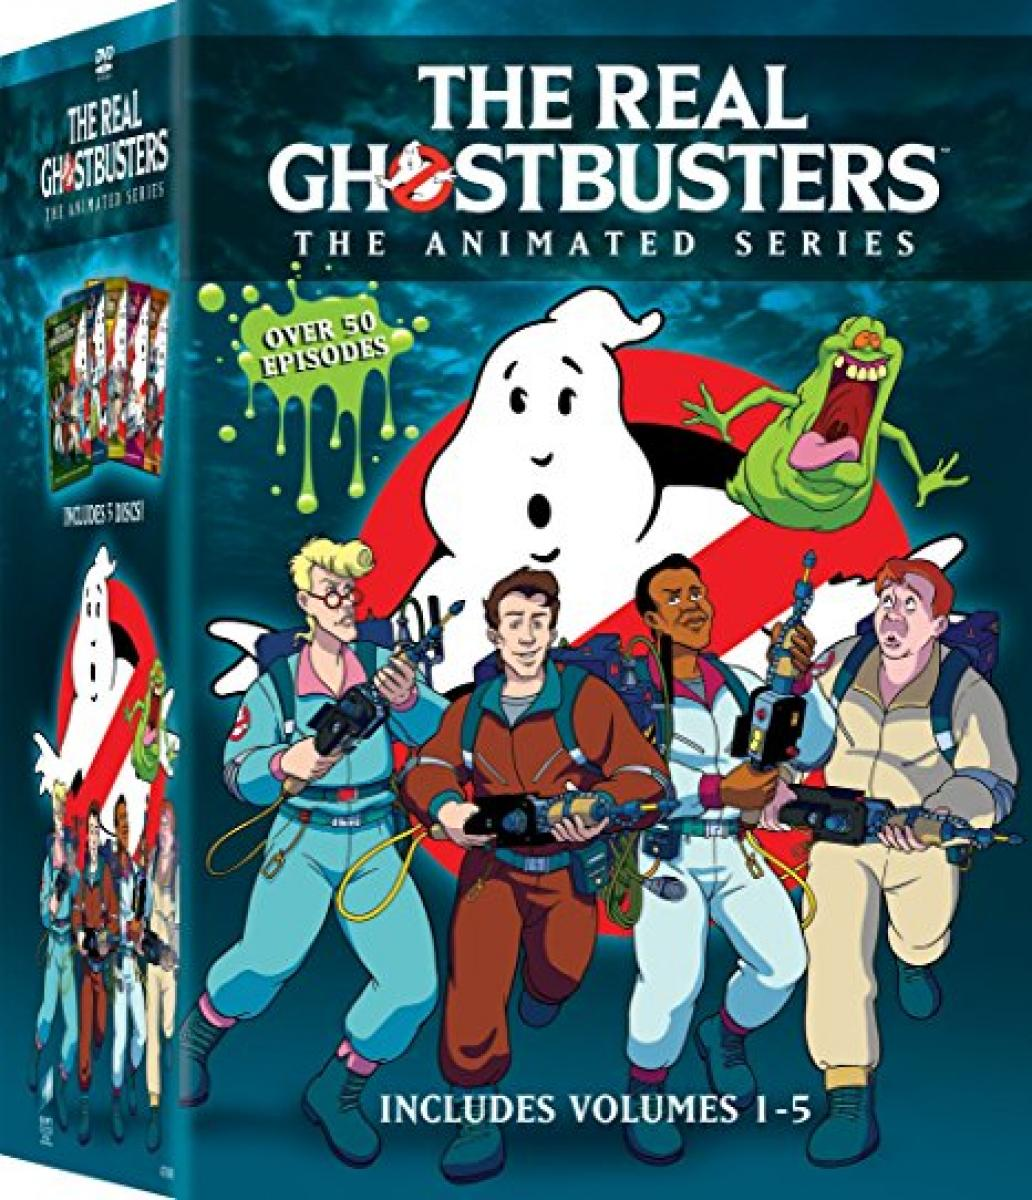 The Real Ghostbusters: The Animated Series